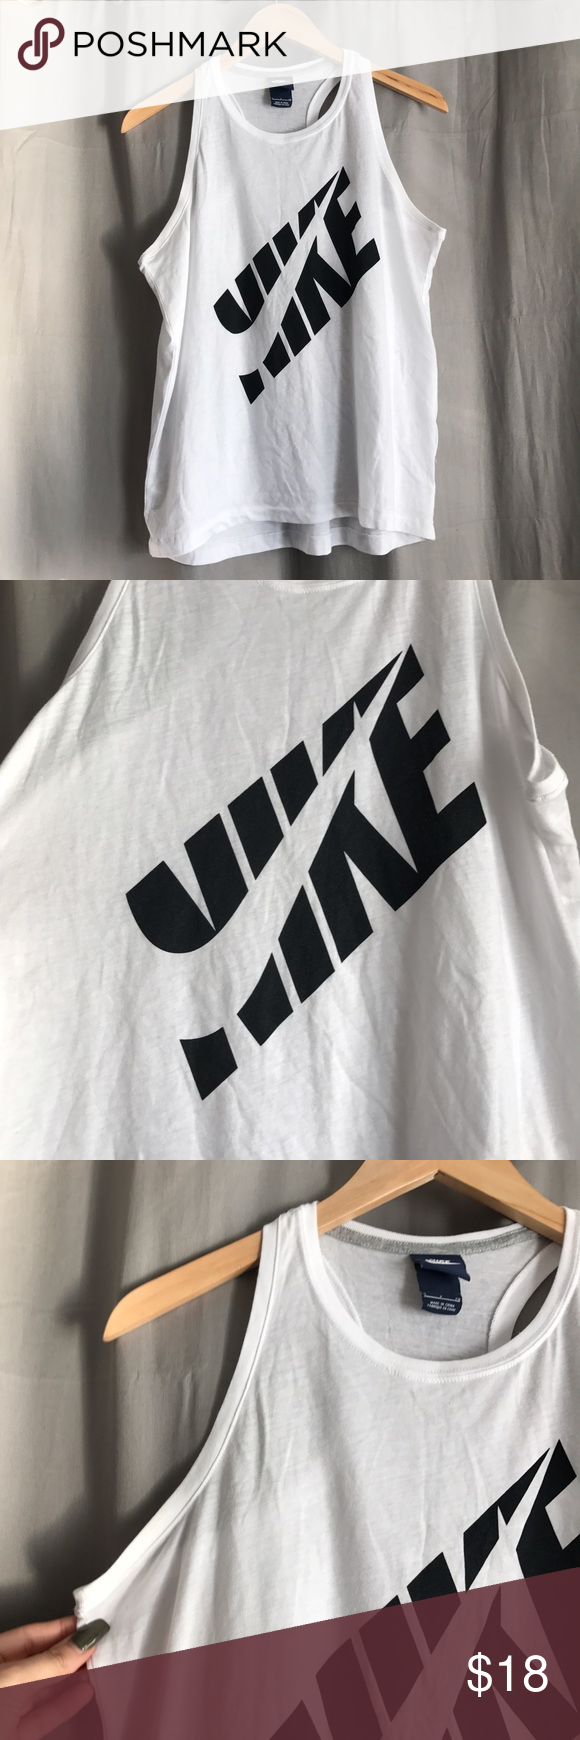 Nike • White Racerback Tank Nike white racerback tank with black logo. Semi-loose fit. Size small. Only worn twice Nike Tops Tank Tops